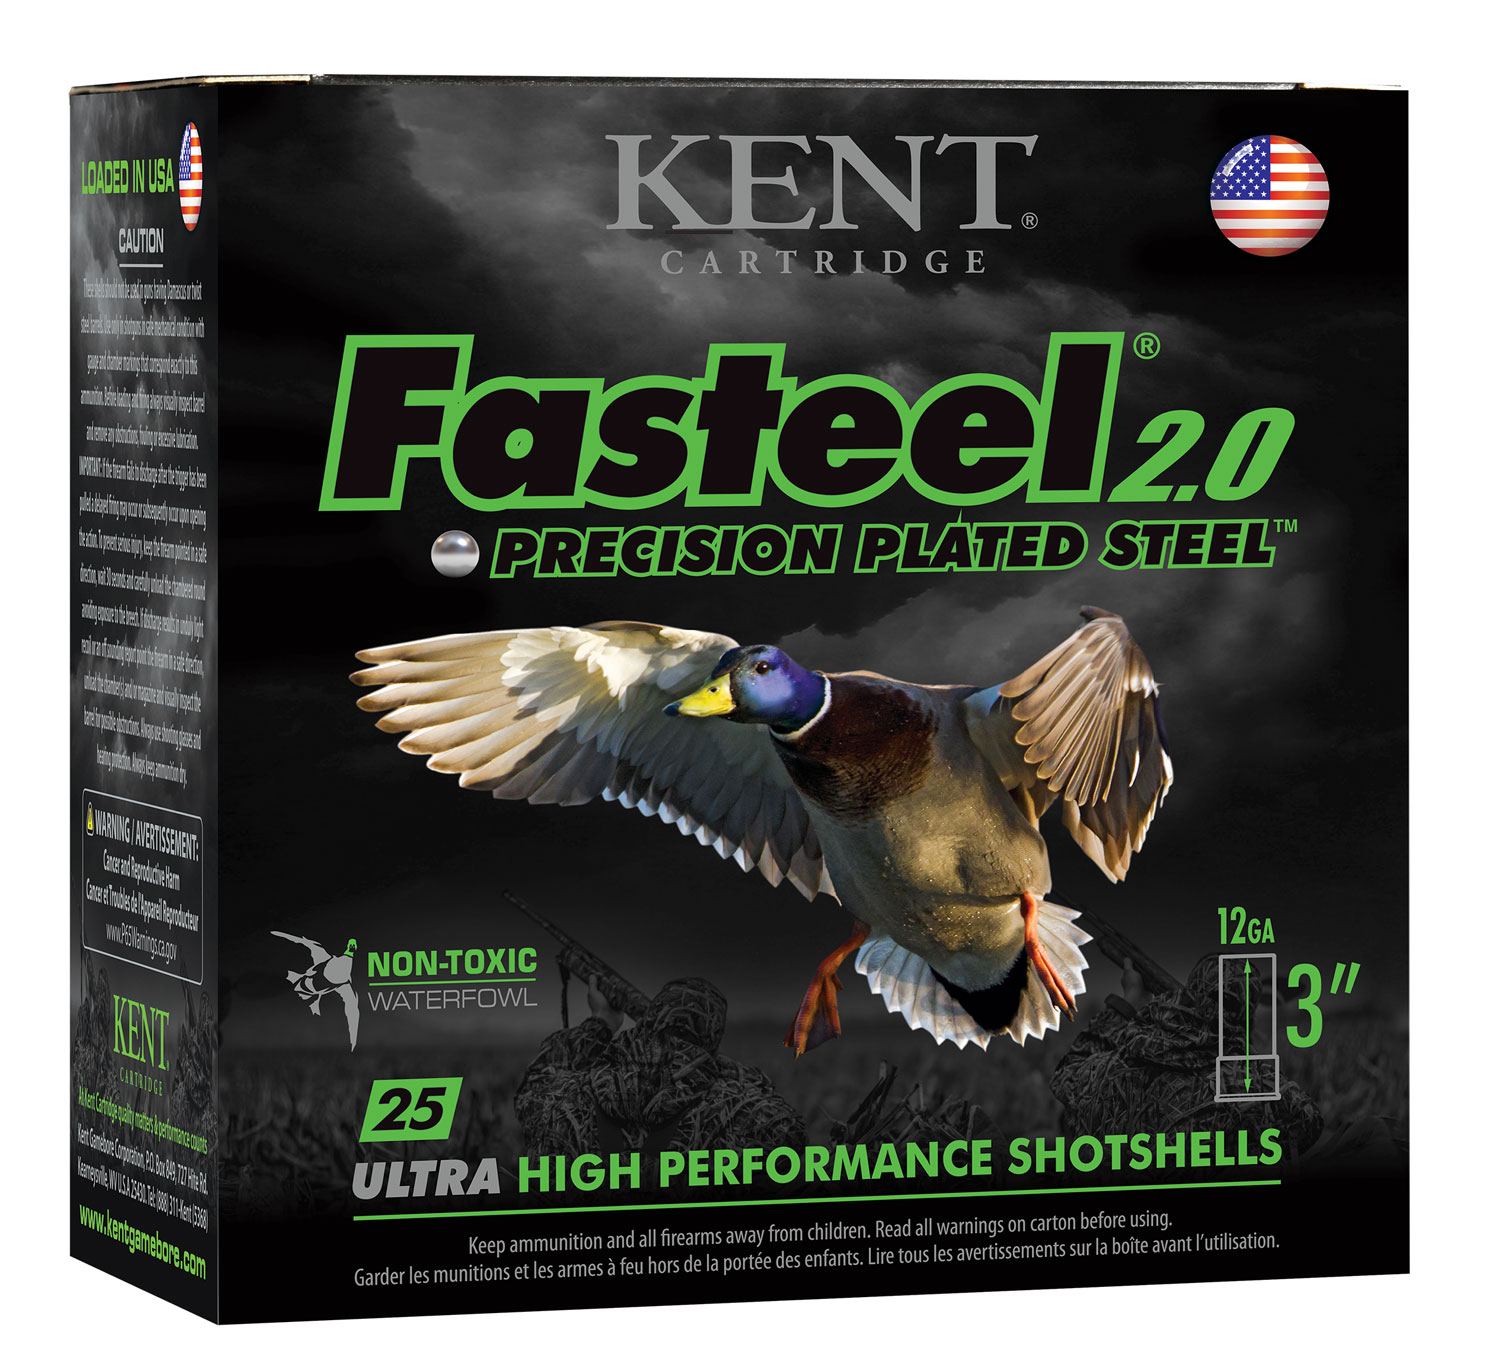 Kent Cartridge K123FS402 Fasteel Waterfowl 12 Gauge 3